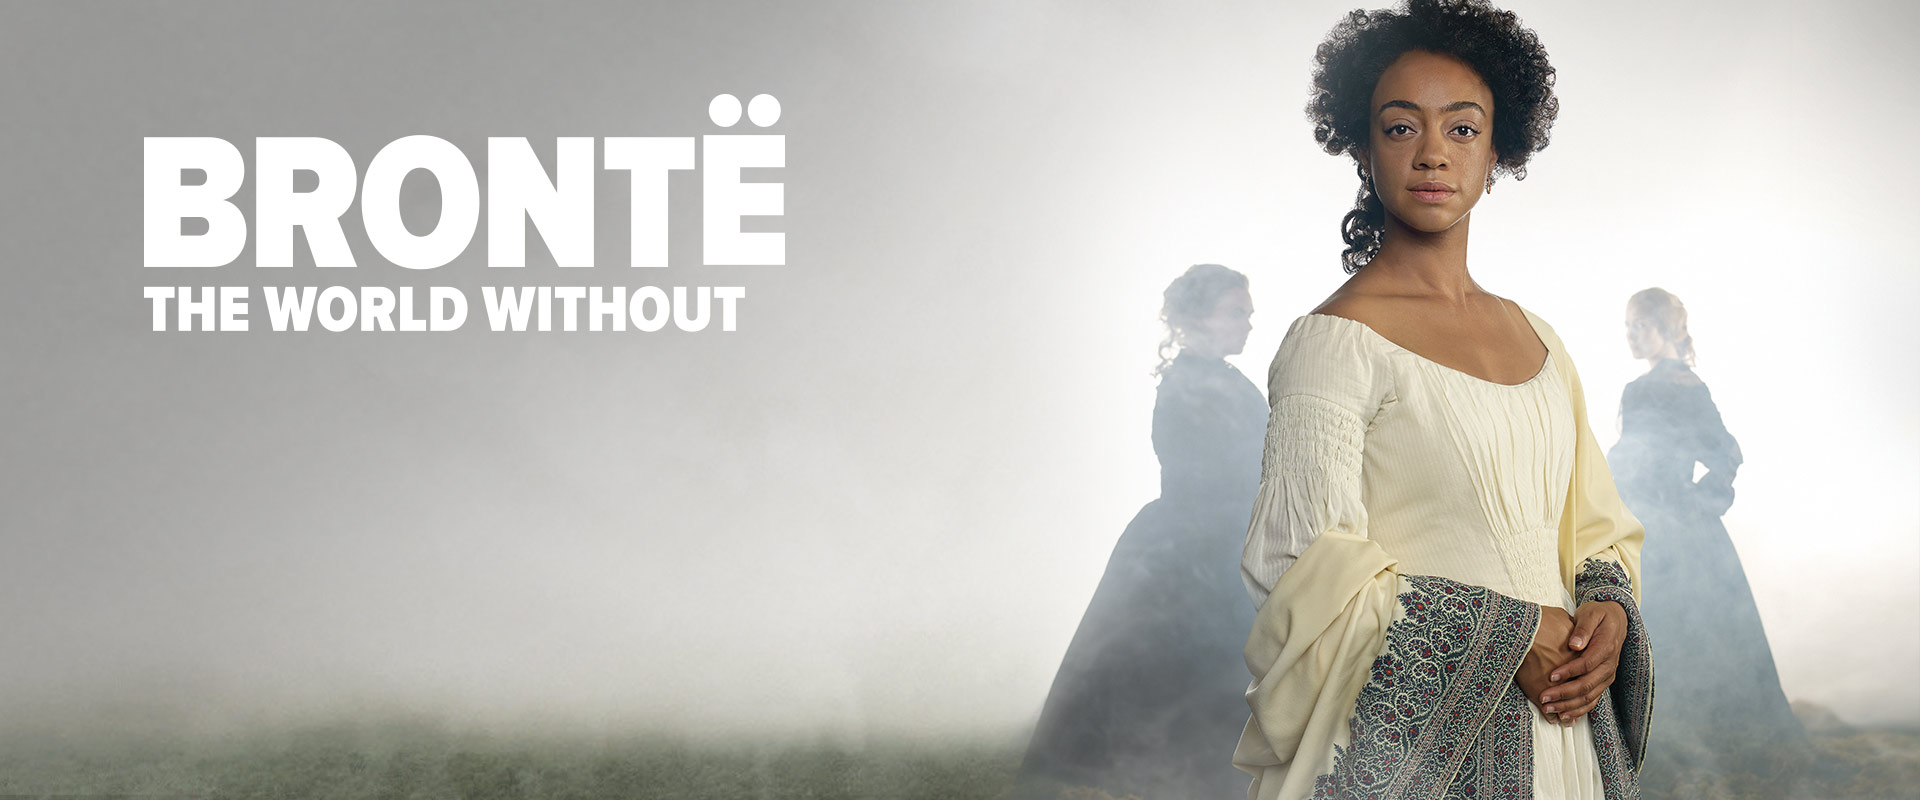 Publicity image from Bronte